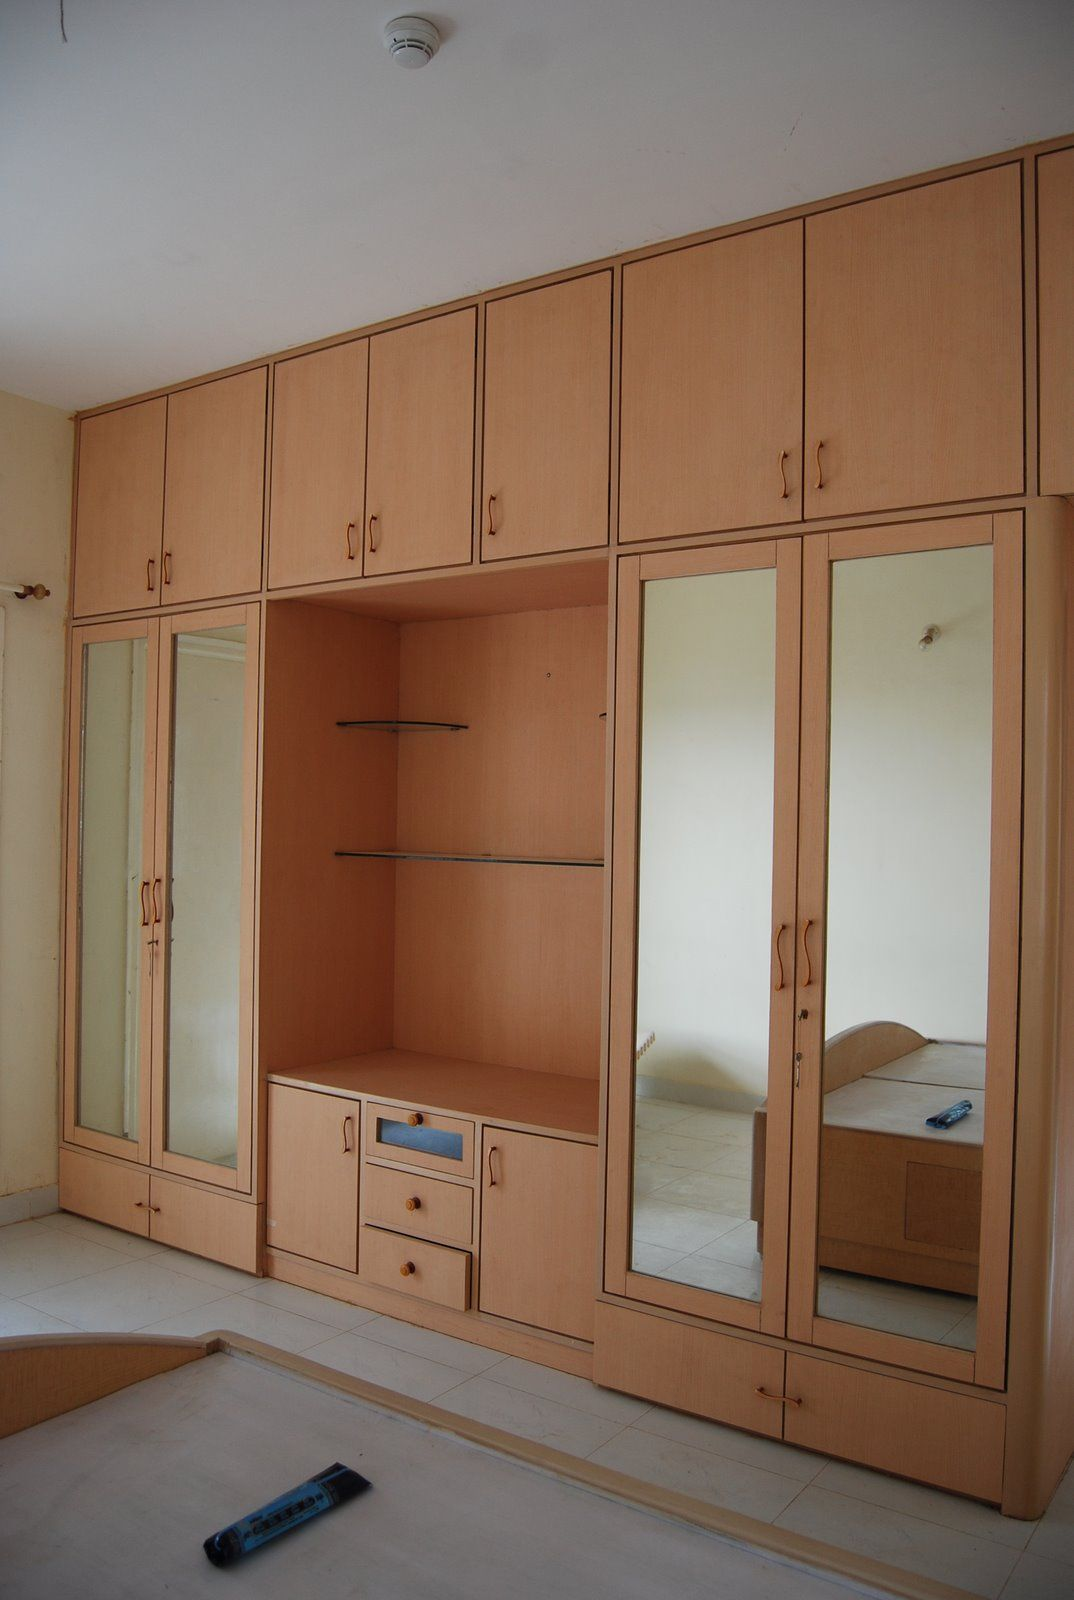 Best Bedroom Wardrobe Design Playwood Wadrobe With Cabinets 640 x 480